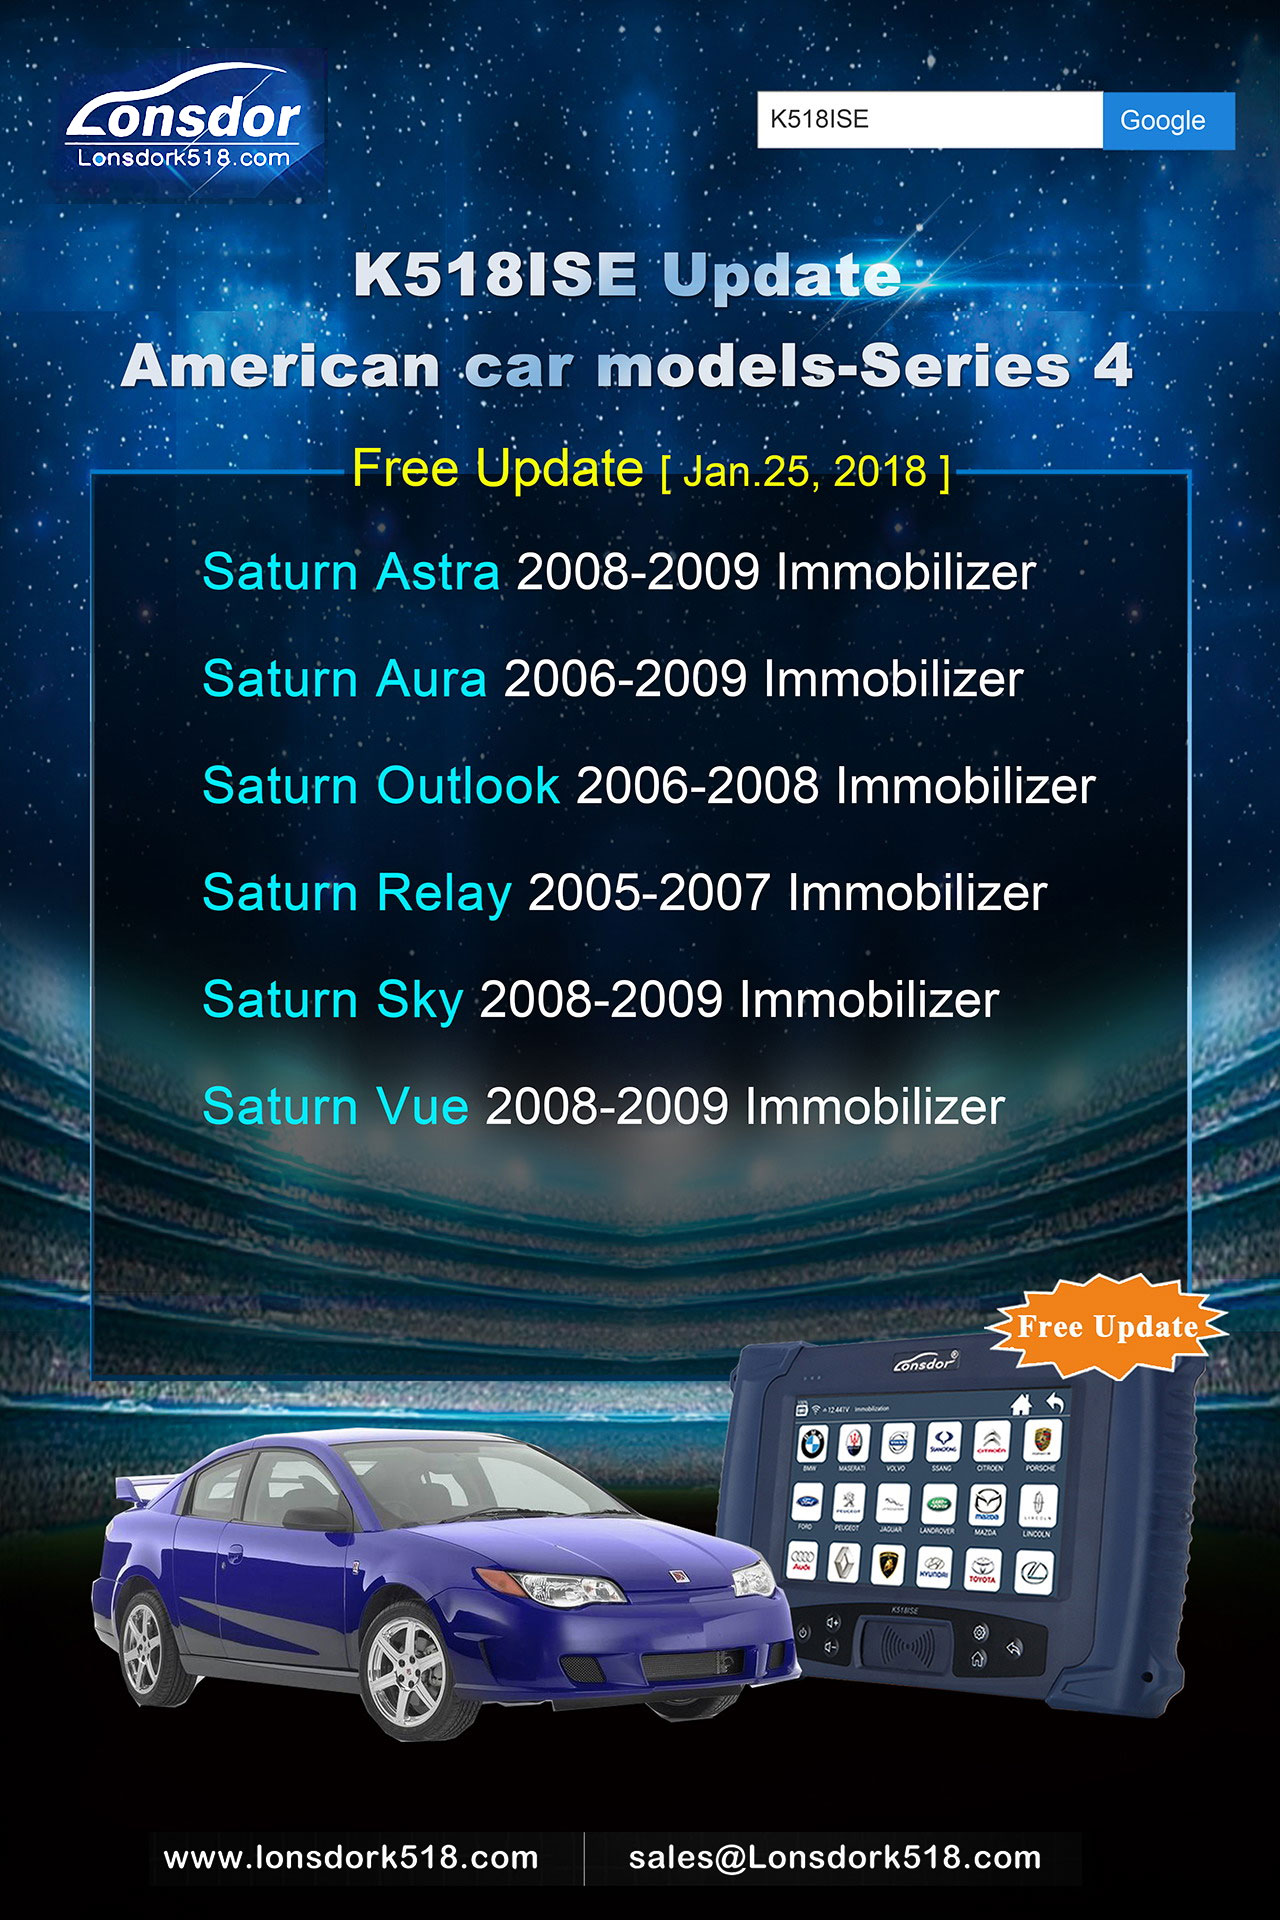 K518ISE-American-car-models-series-4